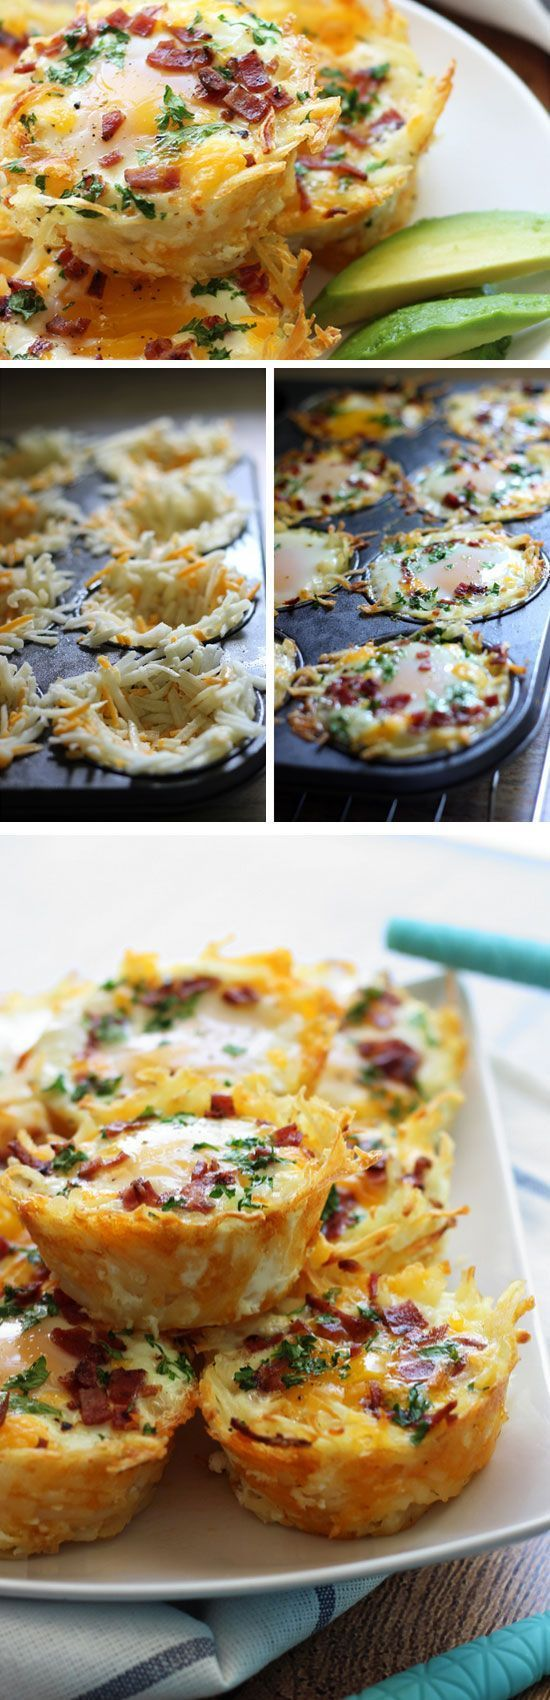 Hash Brown Egg Nests | Homemade Brunch Ideas for a Crowd